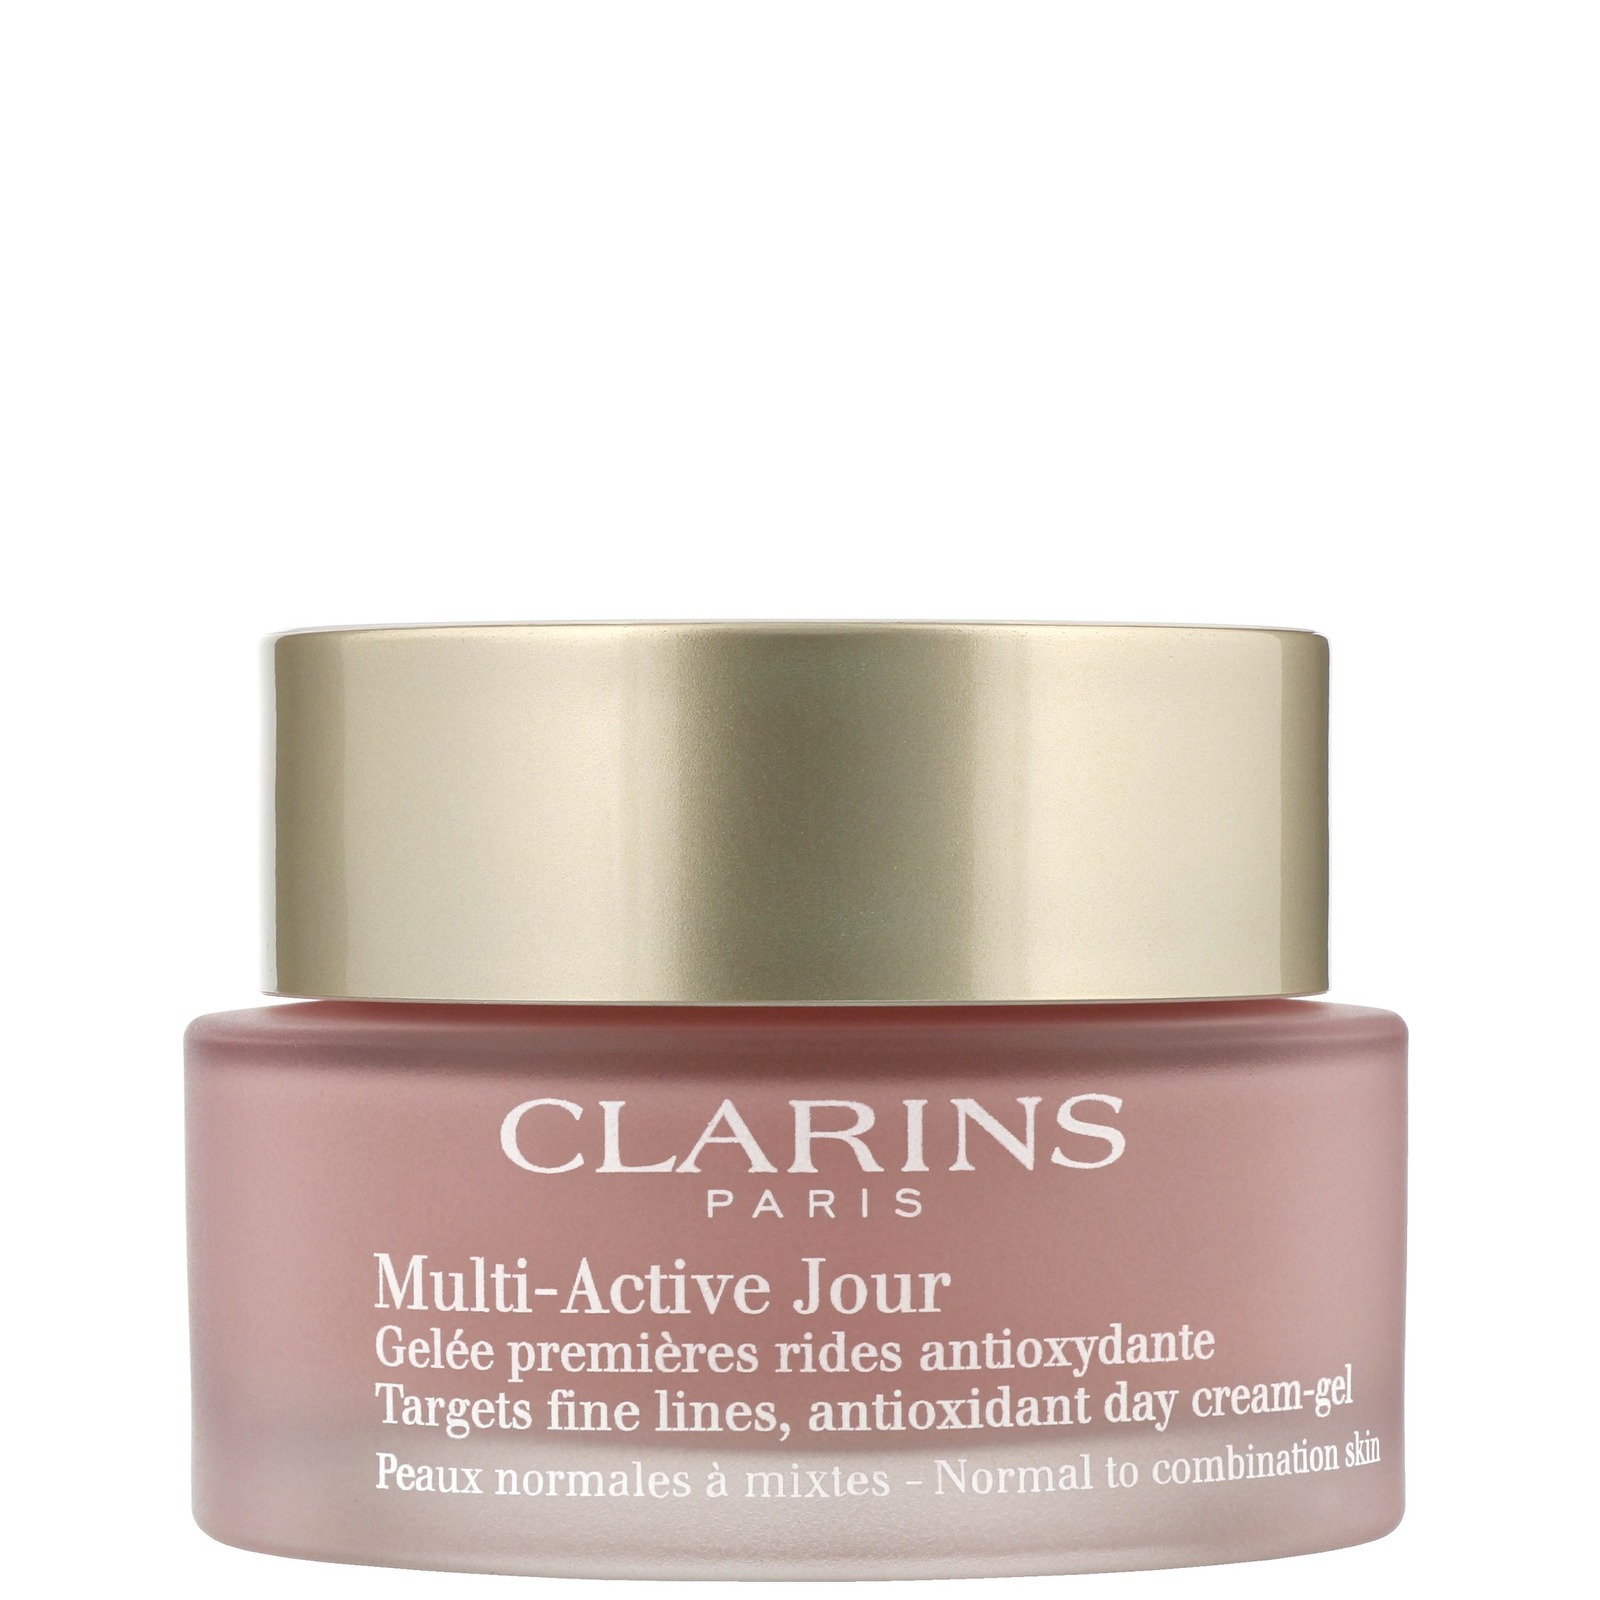 Clarins Men Skin Difference 0.5-ounce Gel (Pack of 2) KeraCare Natural Textures Cleansing Cream